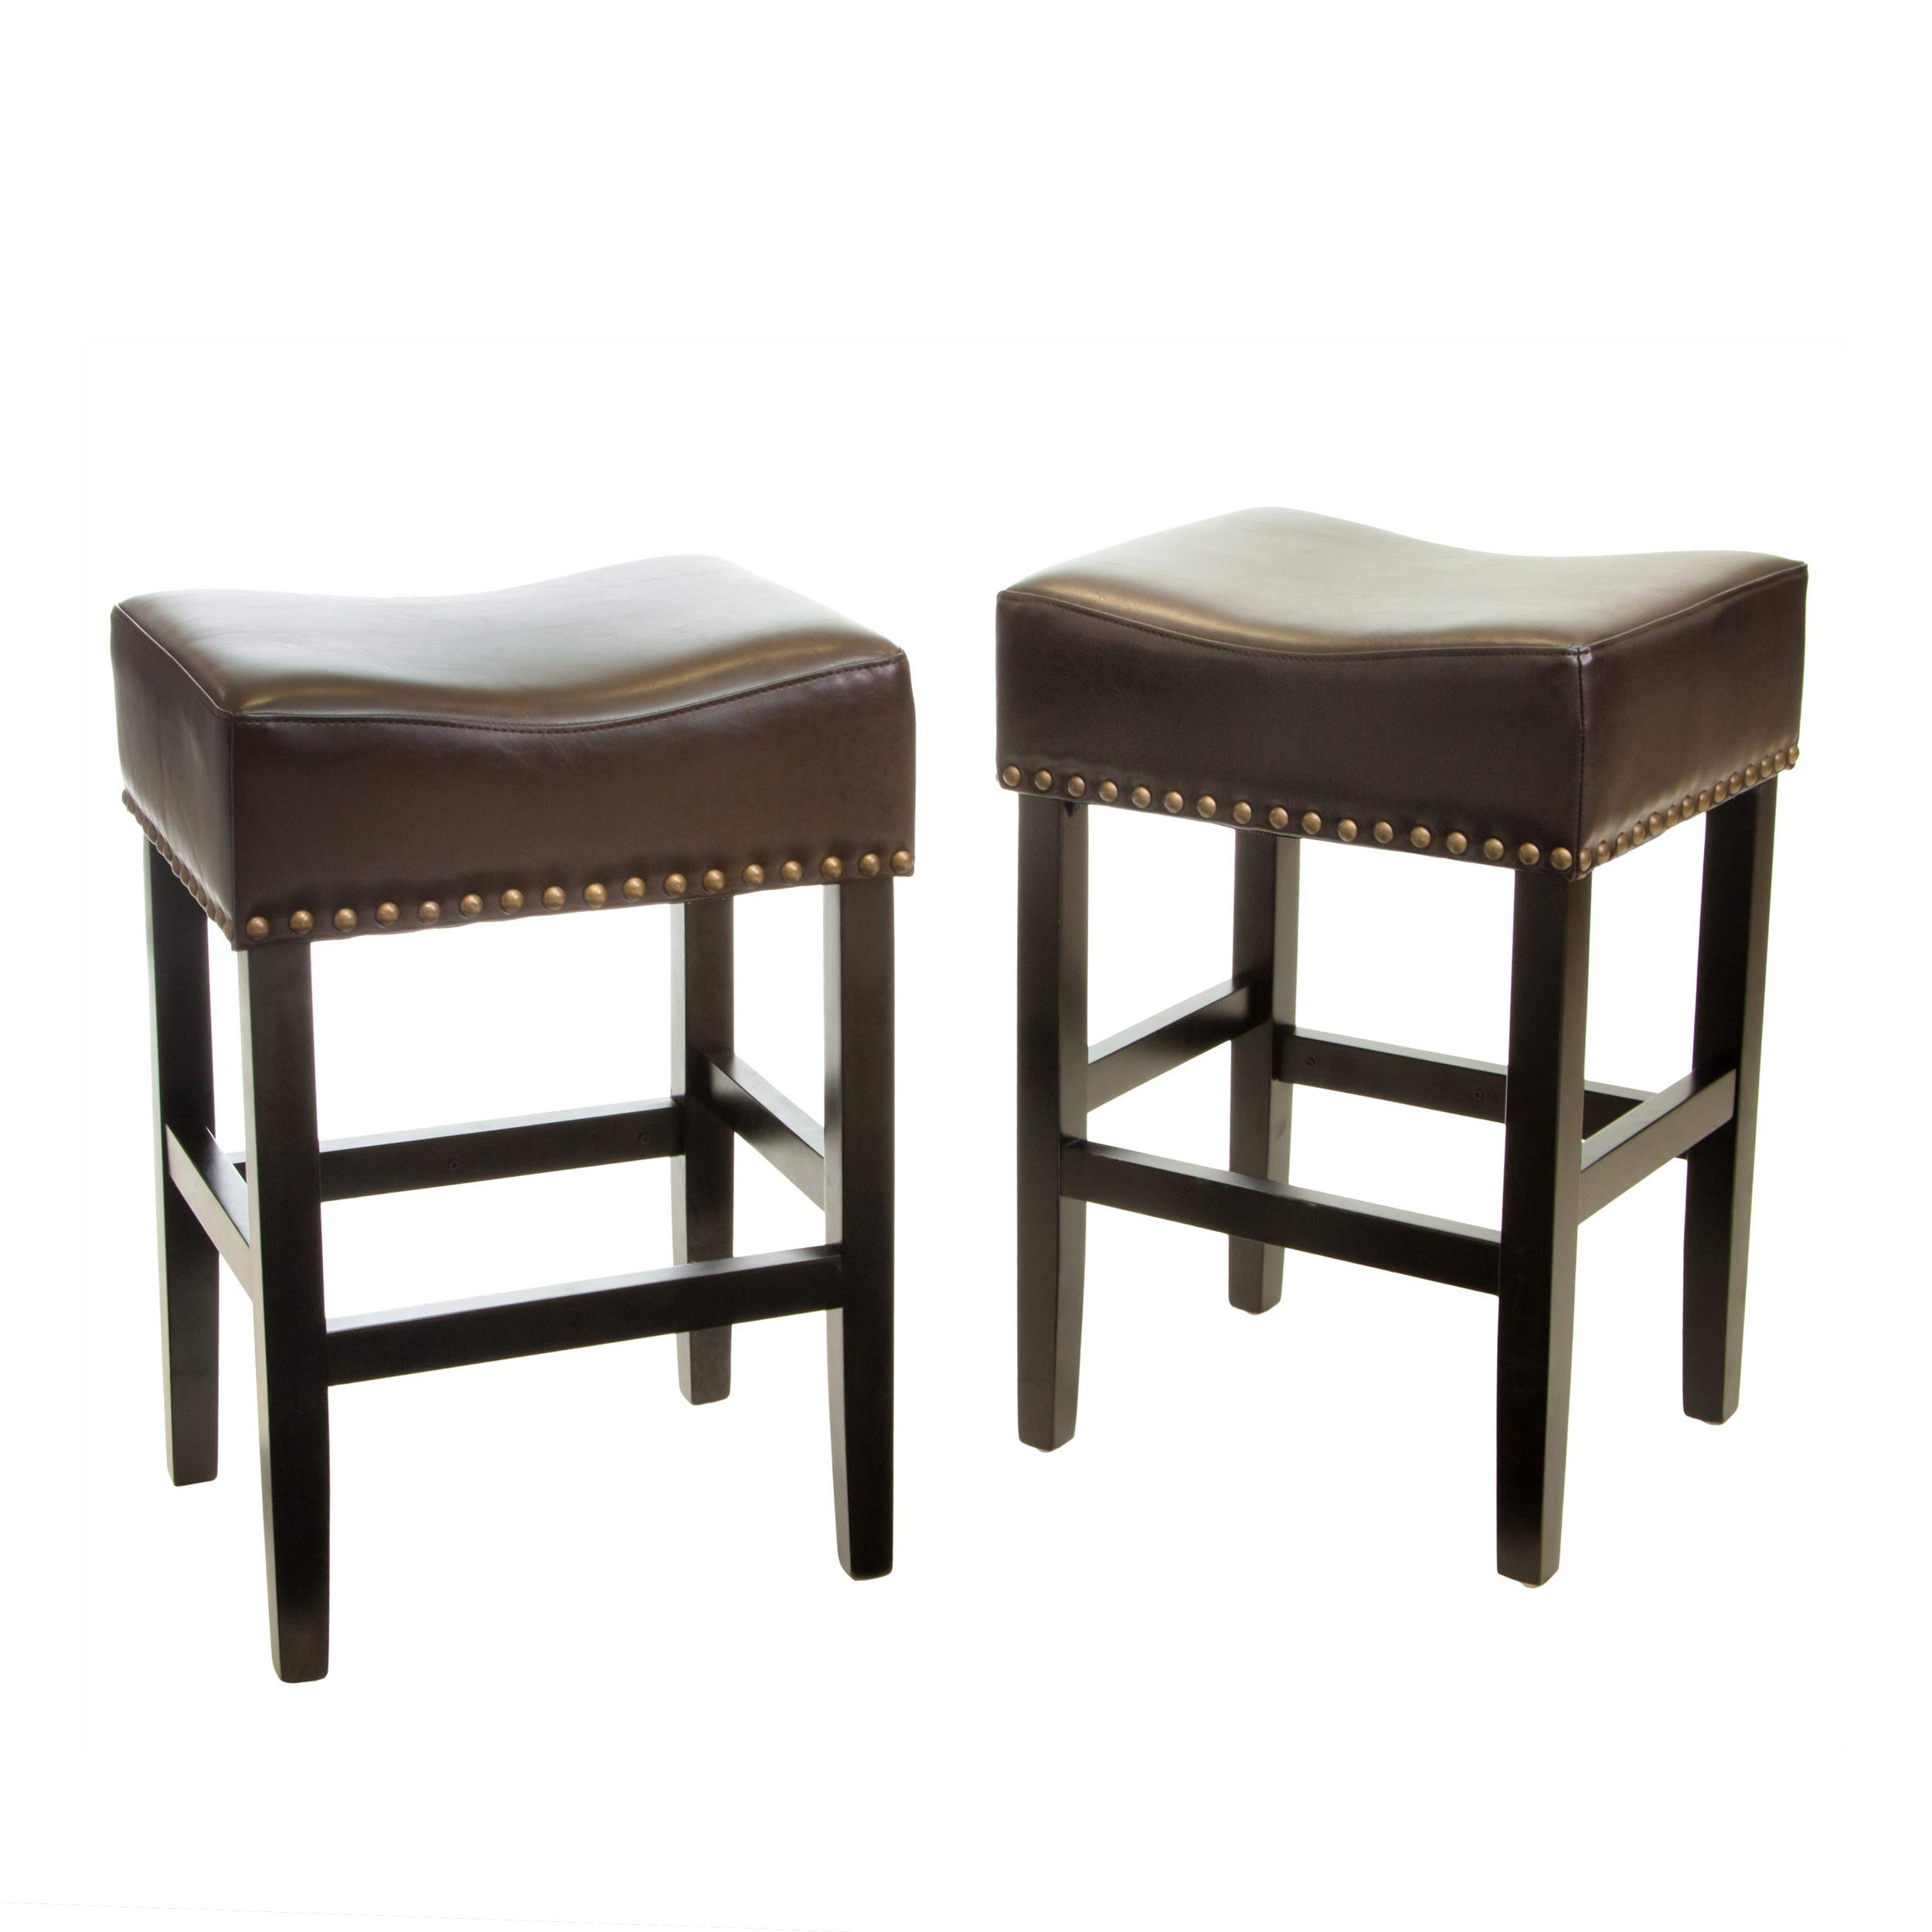 Christopher Knight Home 238536 Chantal Backless Counter Stools with Brass Nailhead Studs, Set of 2, Brown by Christopher Knight Home